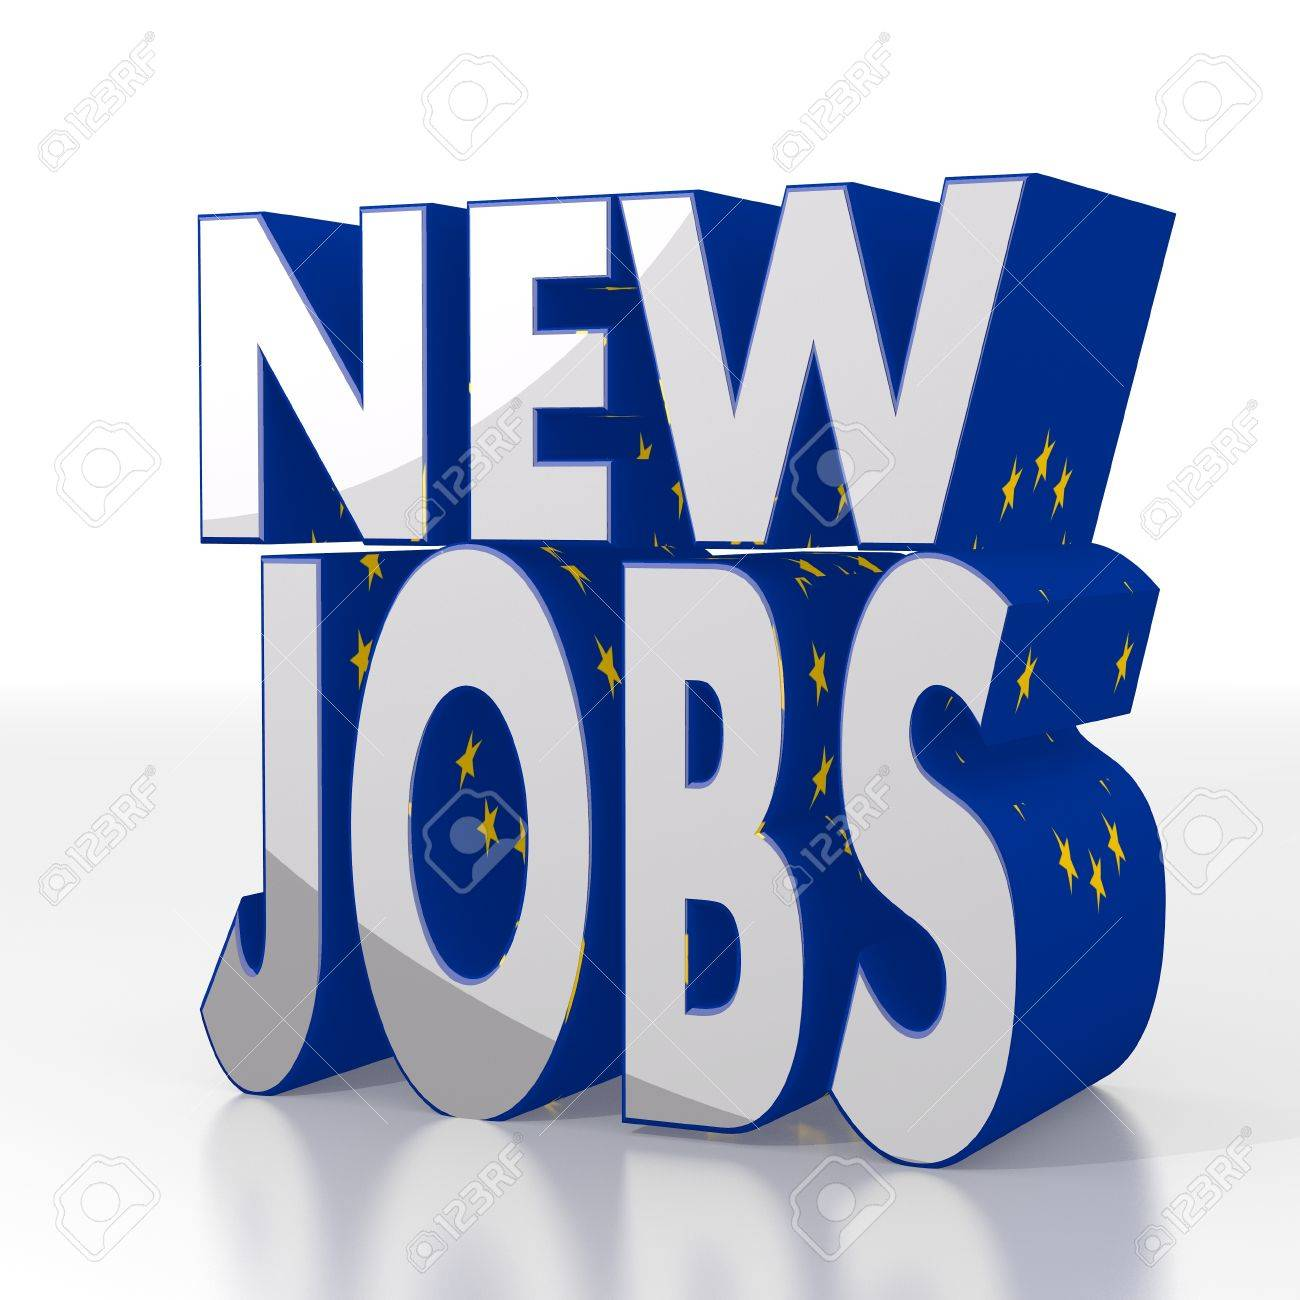 silver european europe d graphic isolated new jobs sign silver european europe 3d graphic isolated new jobs sign eu flag pattern stock photo